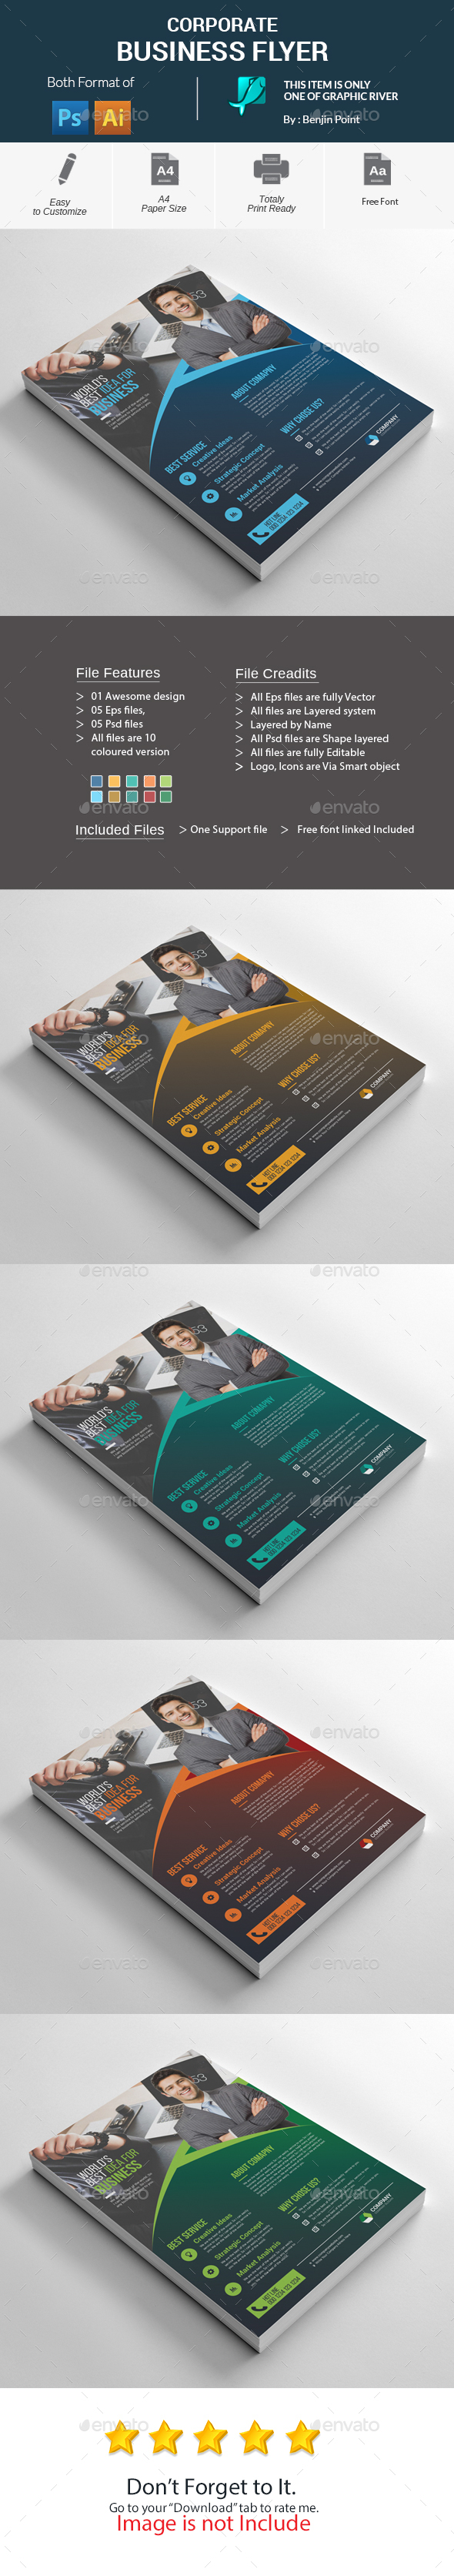 GraphicRiver Corporate Business Flyer 20990152